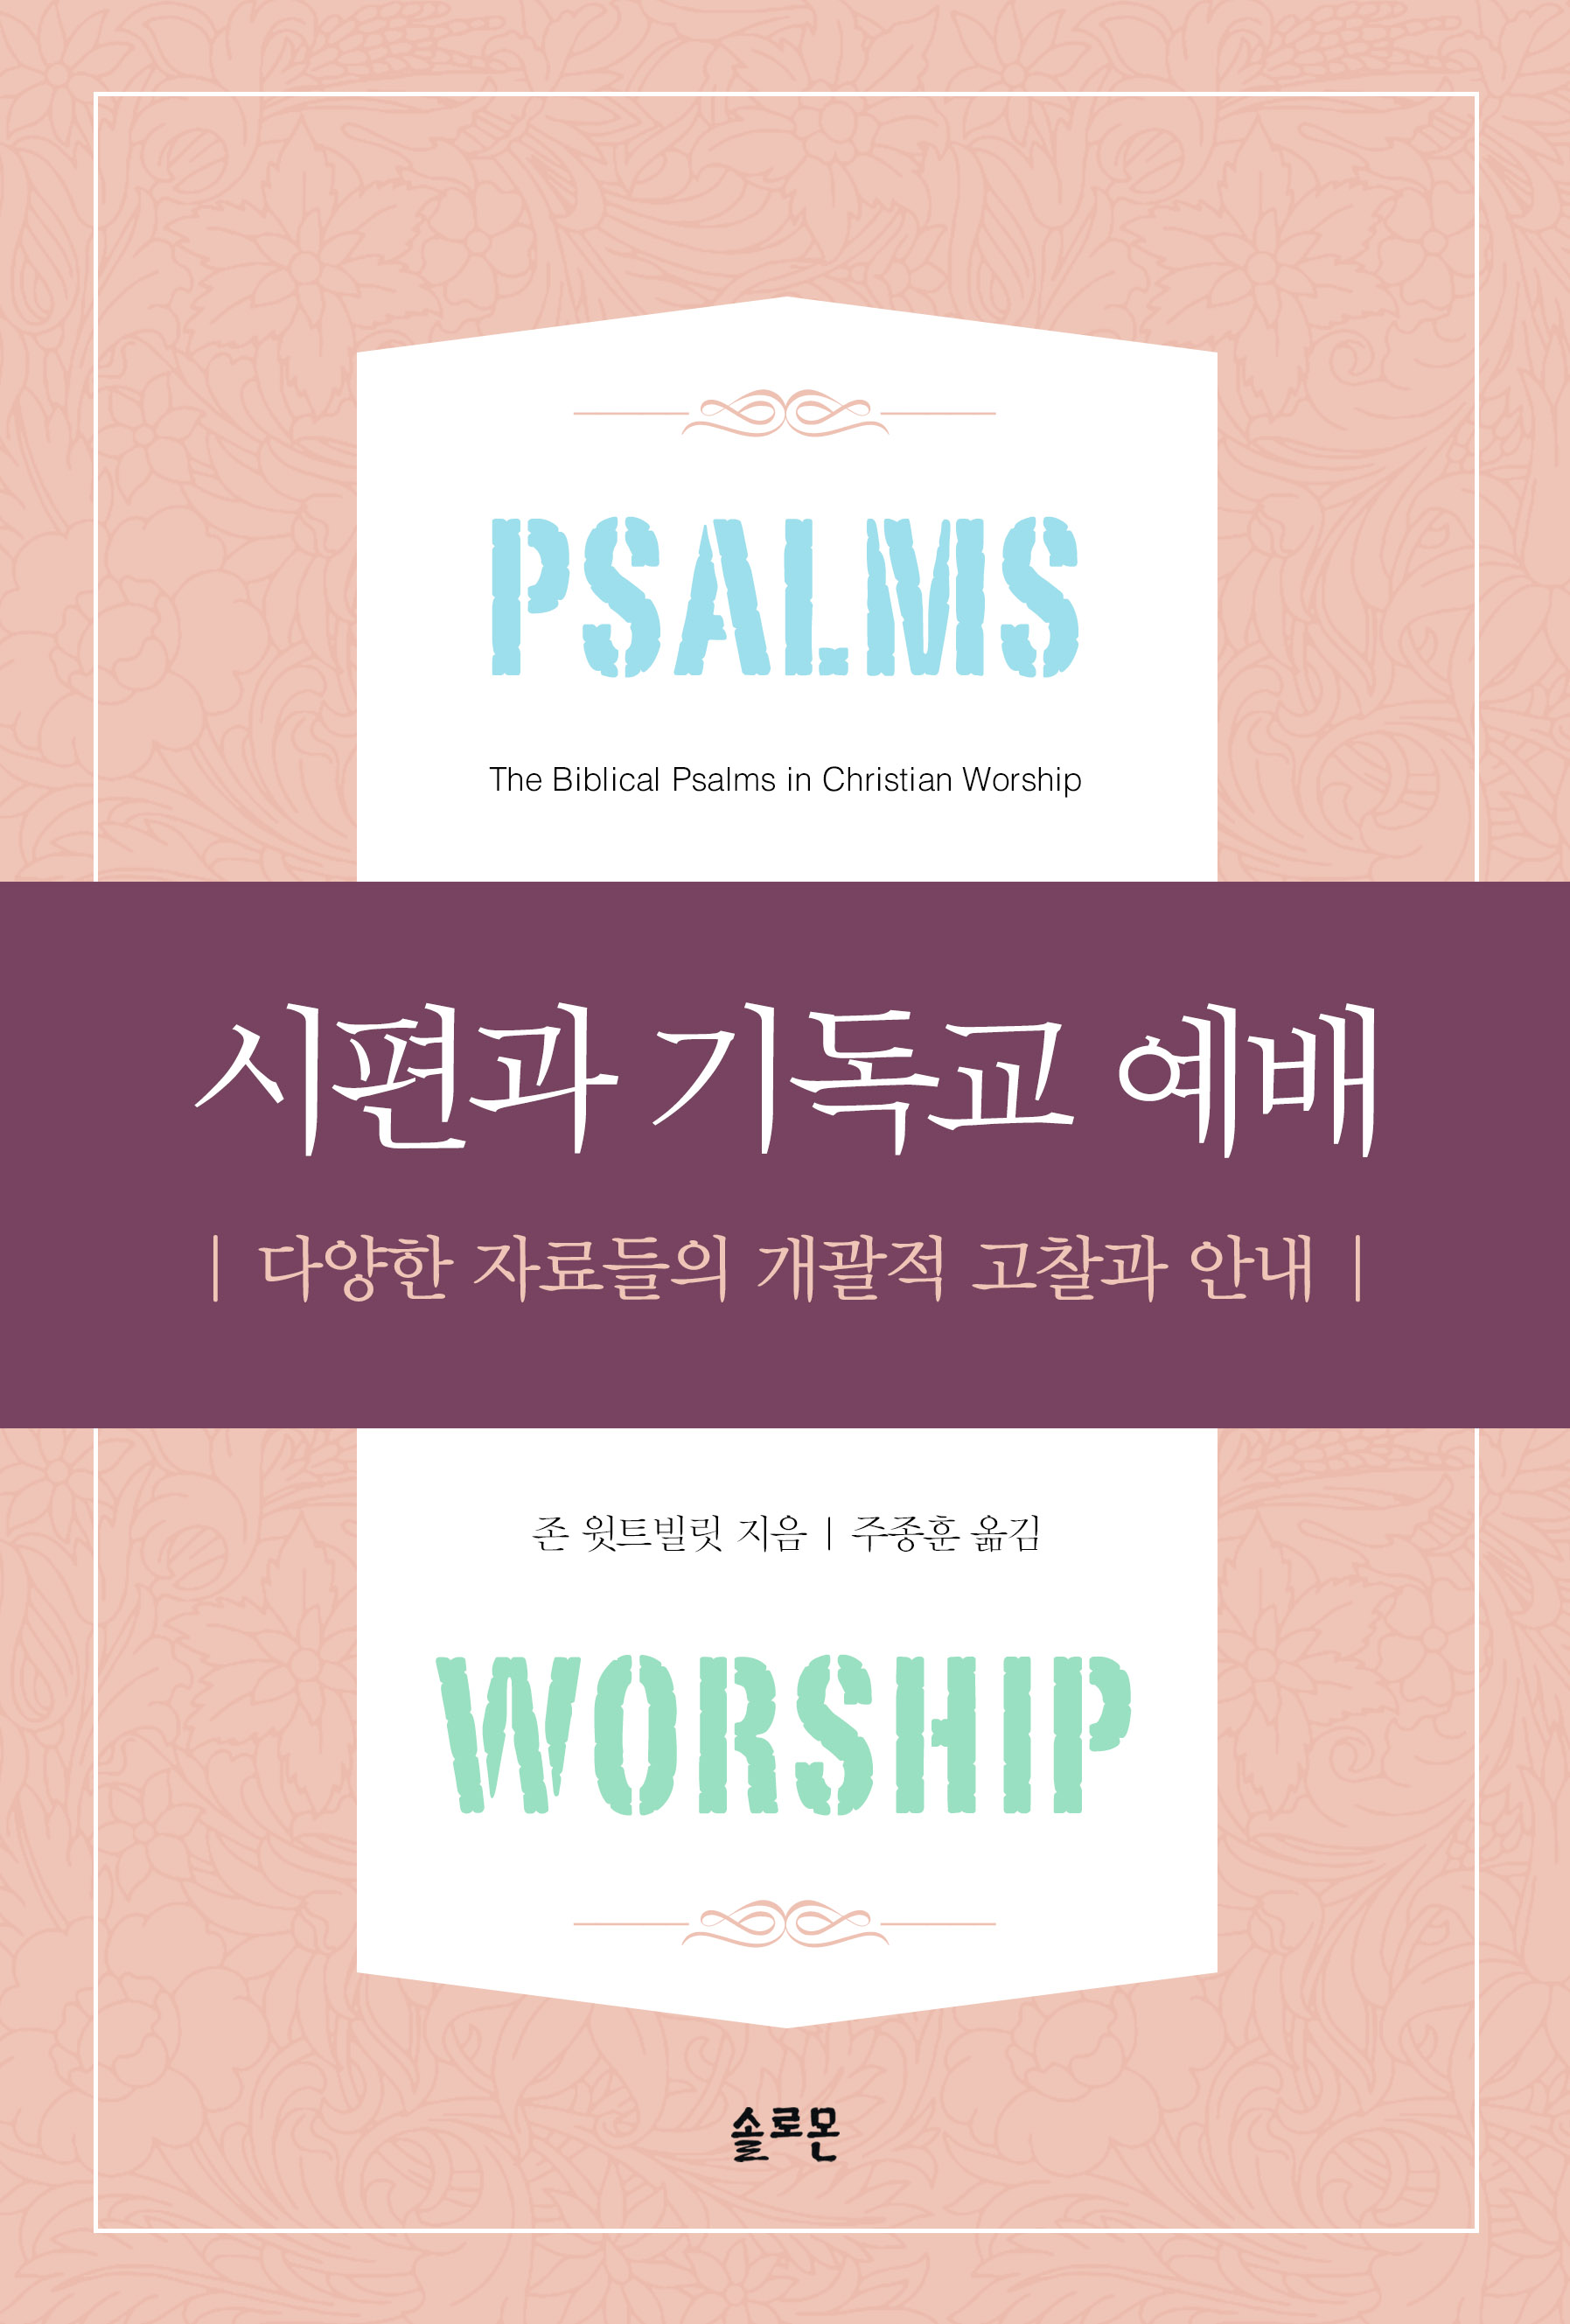 The Biblical Psalms in Christian Worship Korean Version